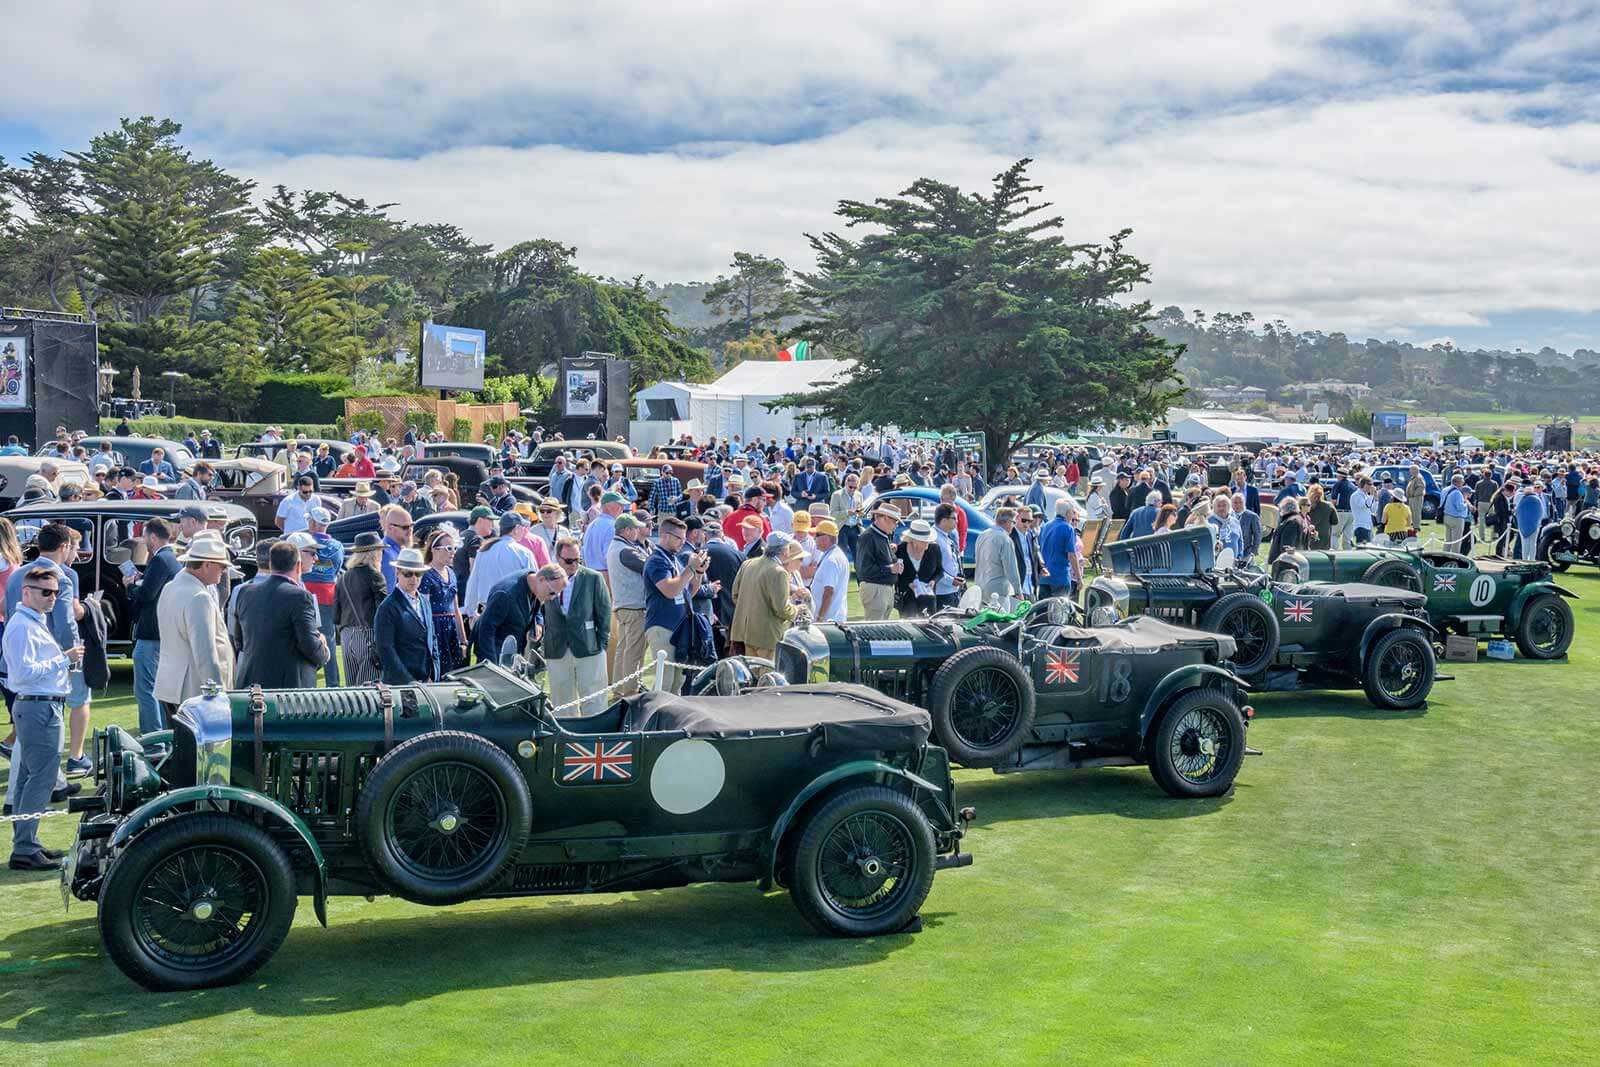 Bentley cars lined up on the show field at the Pebble Beach Concours d'Elegance